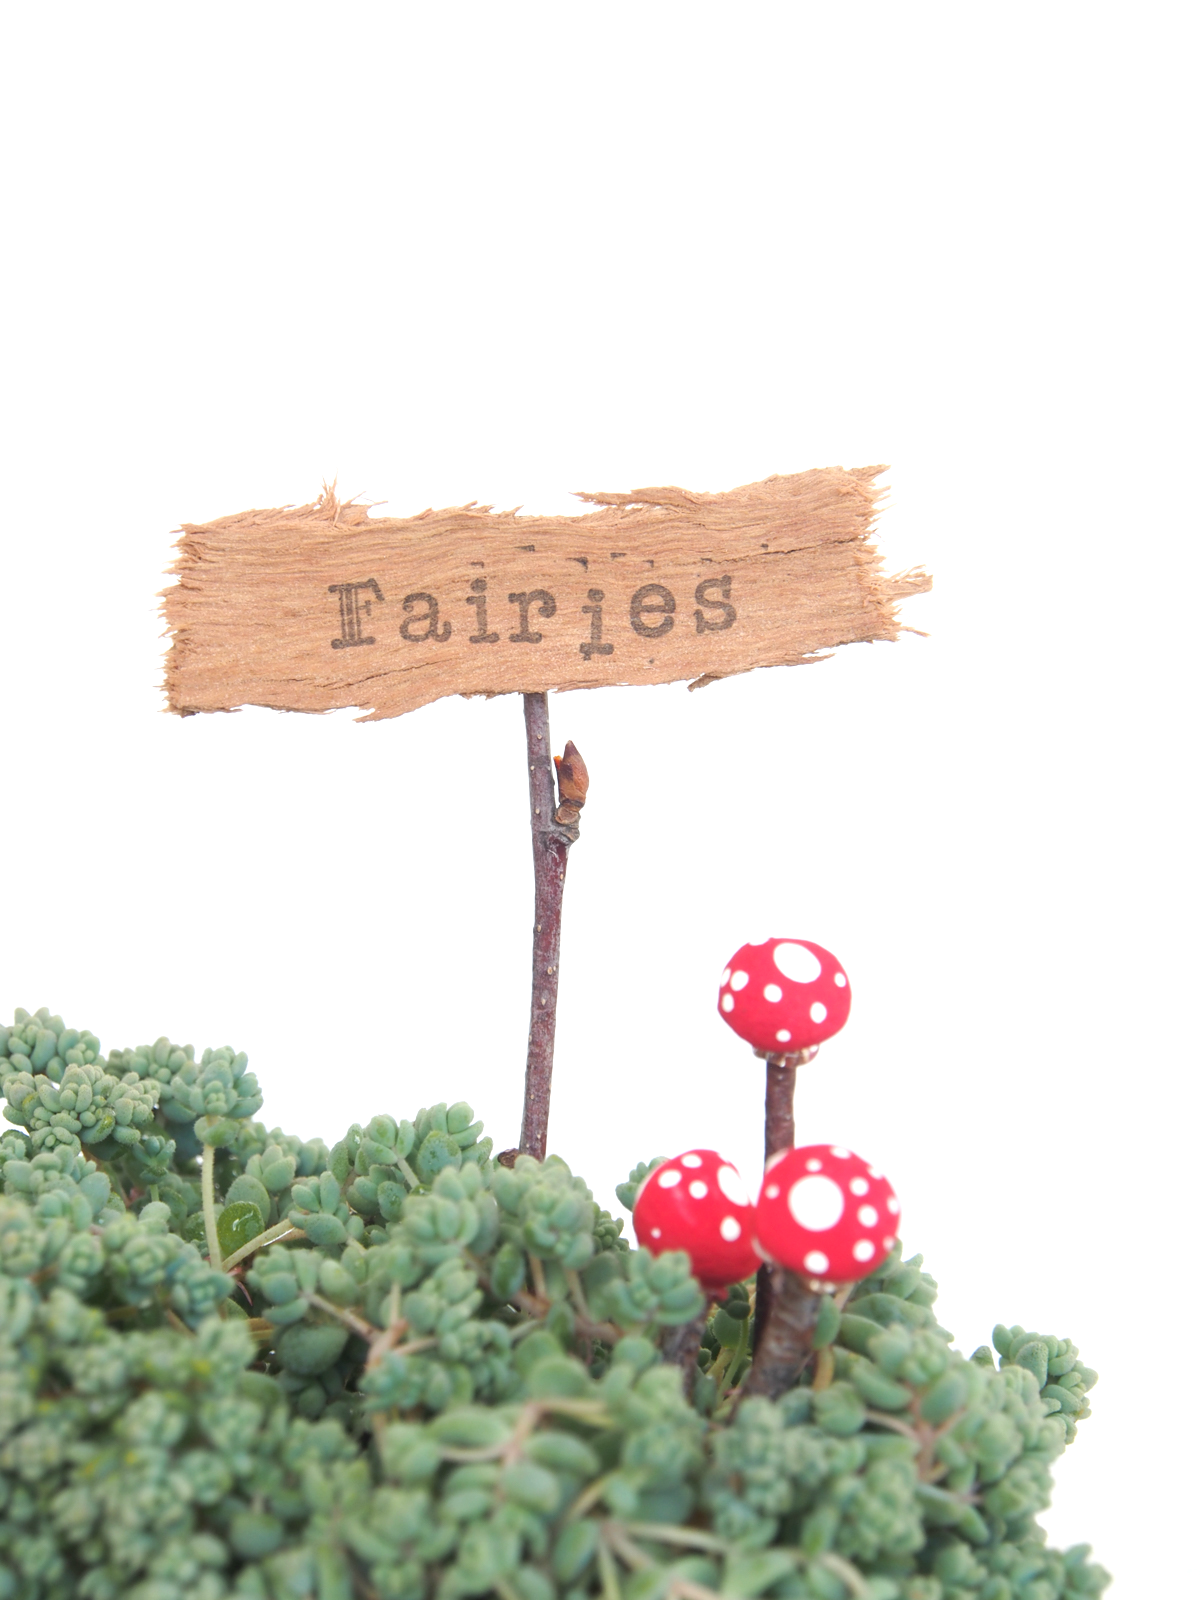 How To Make A Rustic Sign For Your Fairy Garden